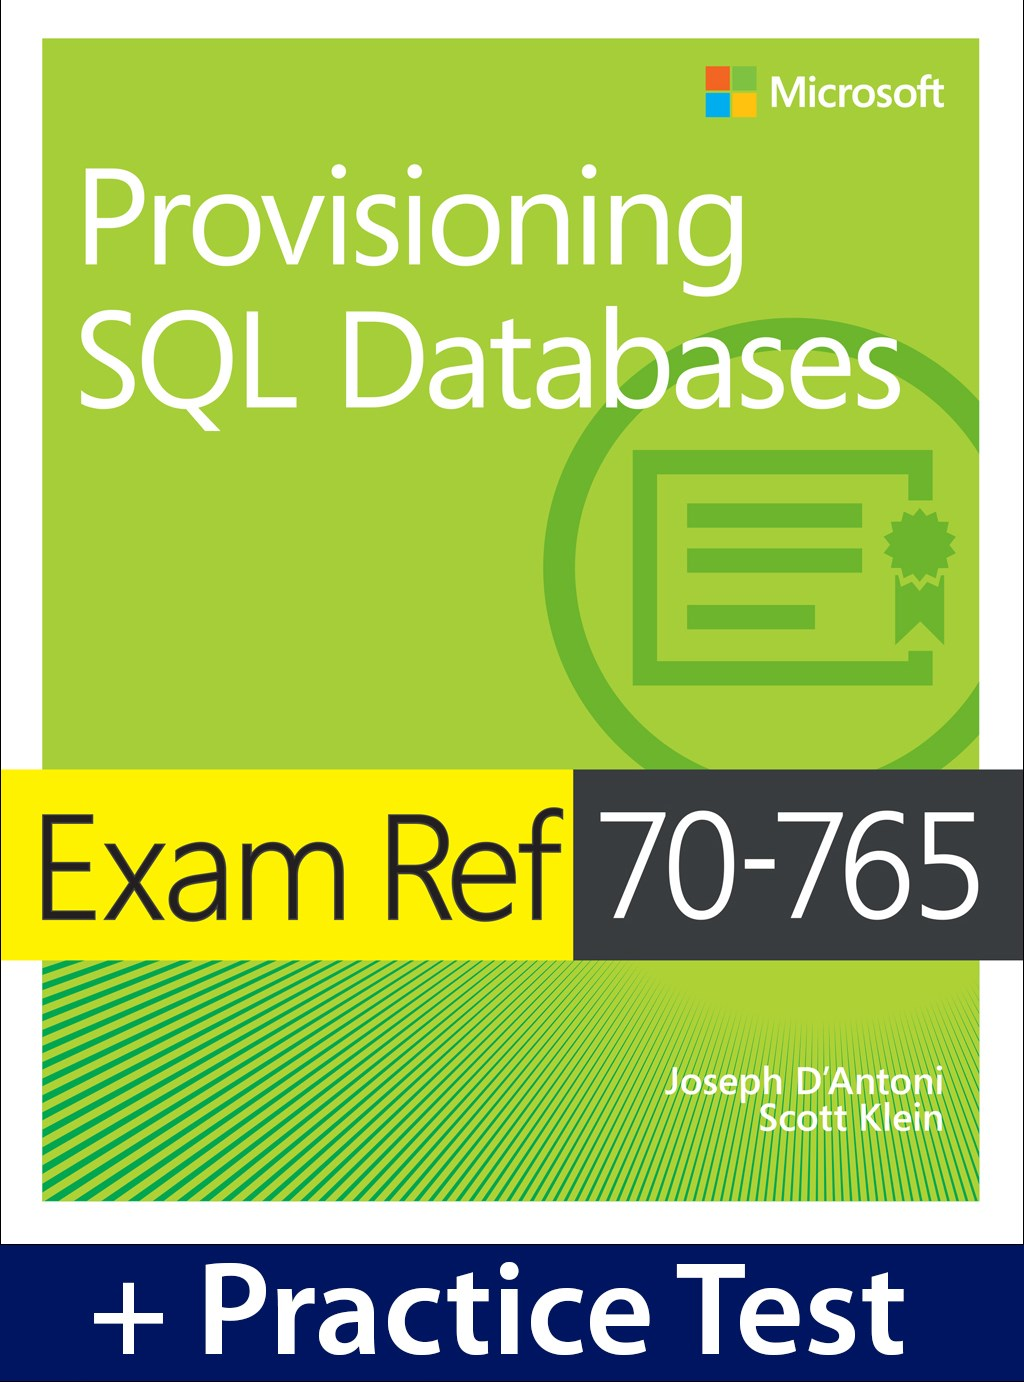 Exam Ref 70-765 Provisioning SQL Databases with Practice Test